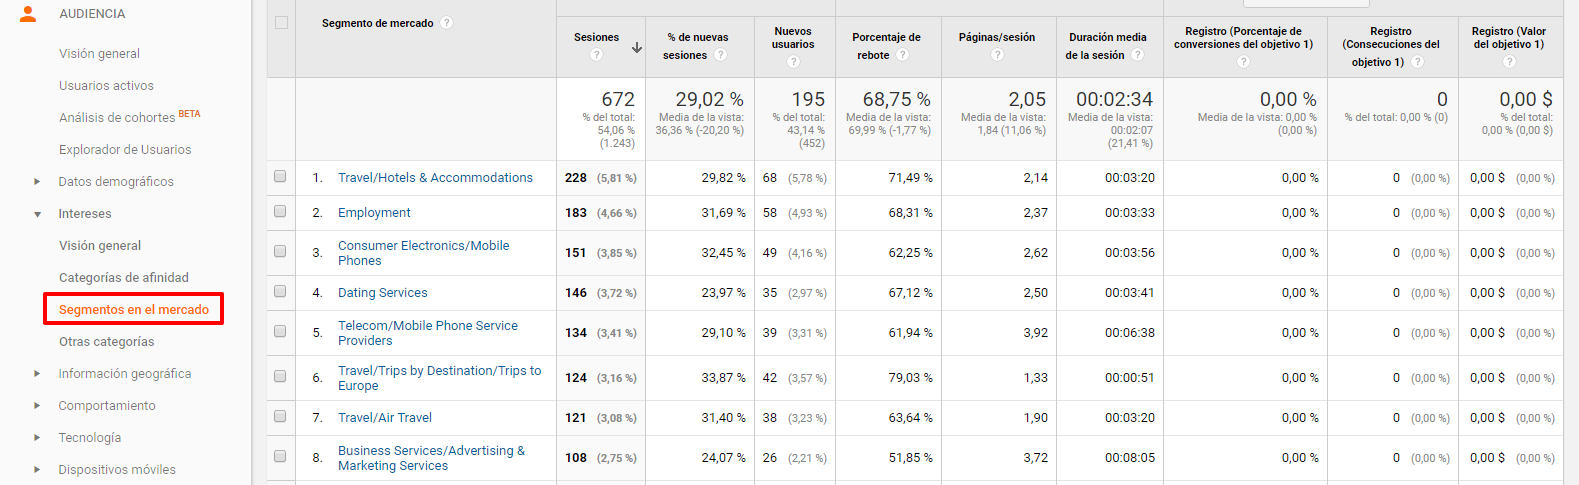 Ejemplo de interés de la audiencia en Google Analytics